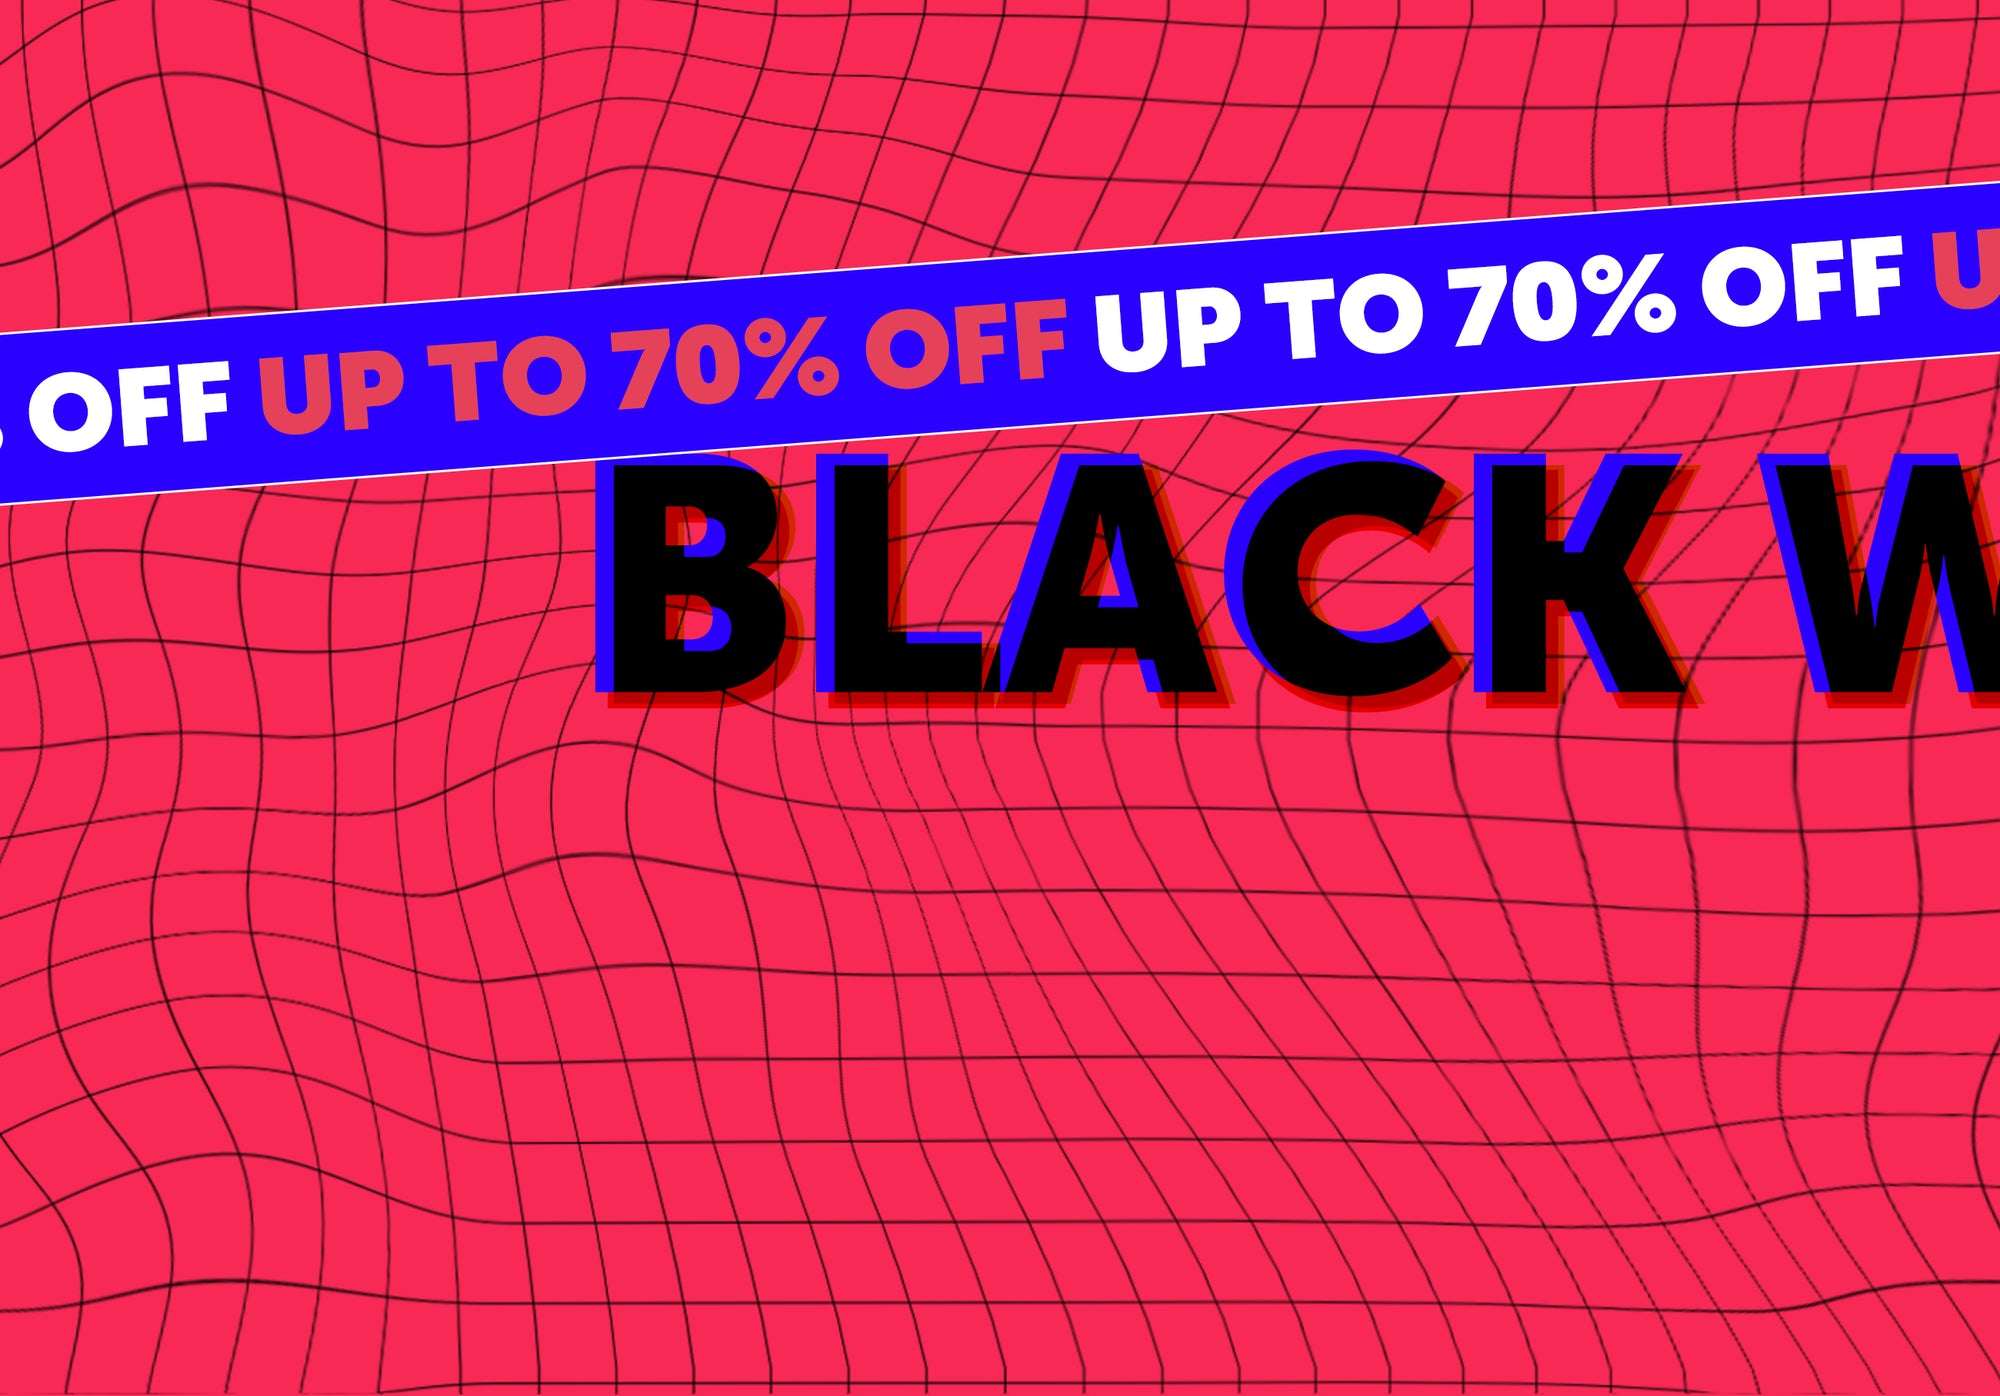 Overcube Black Friday Op To 70% off